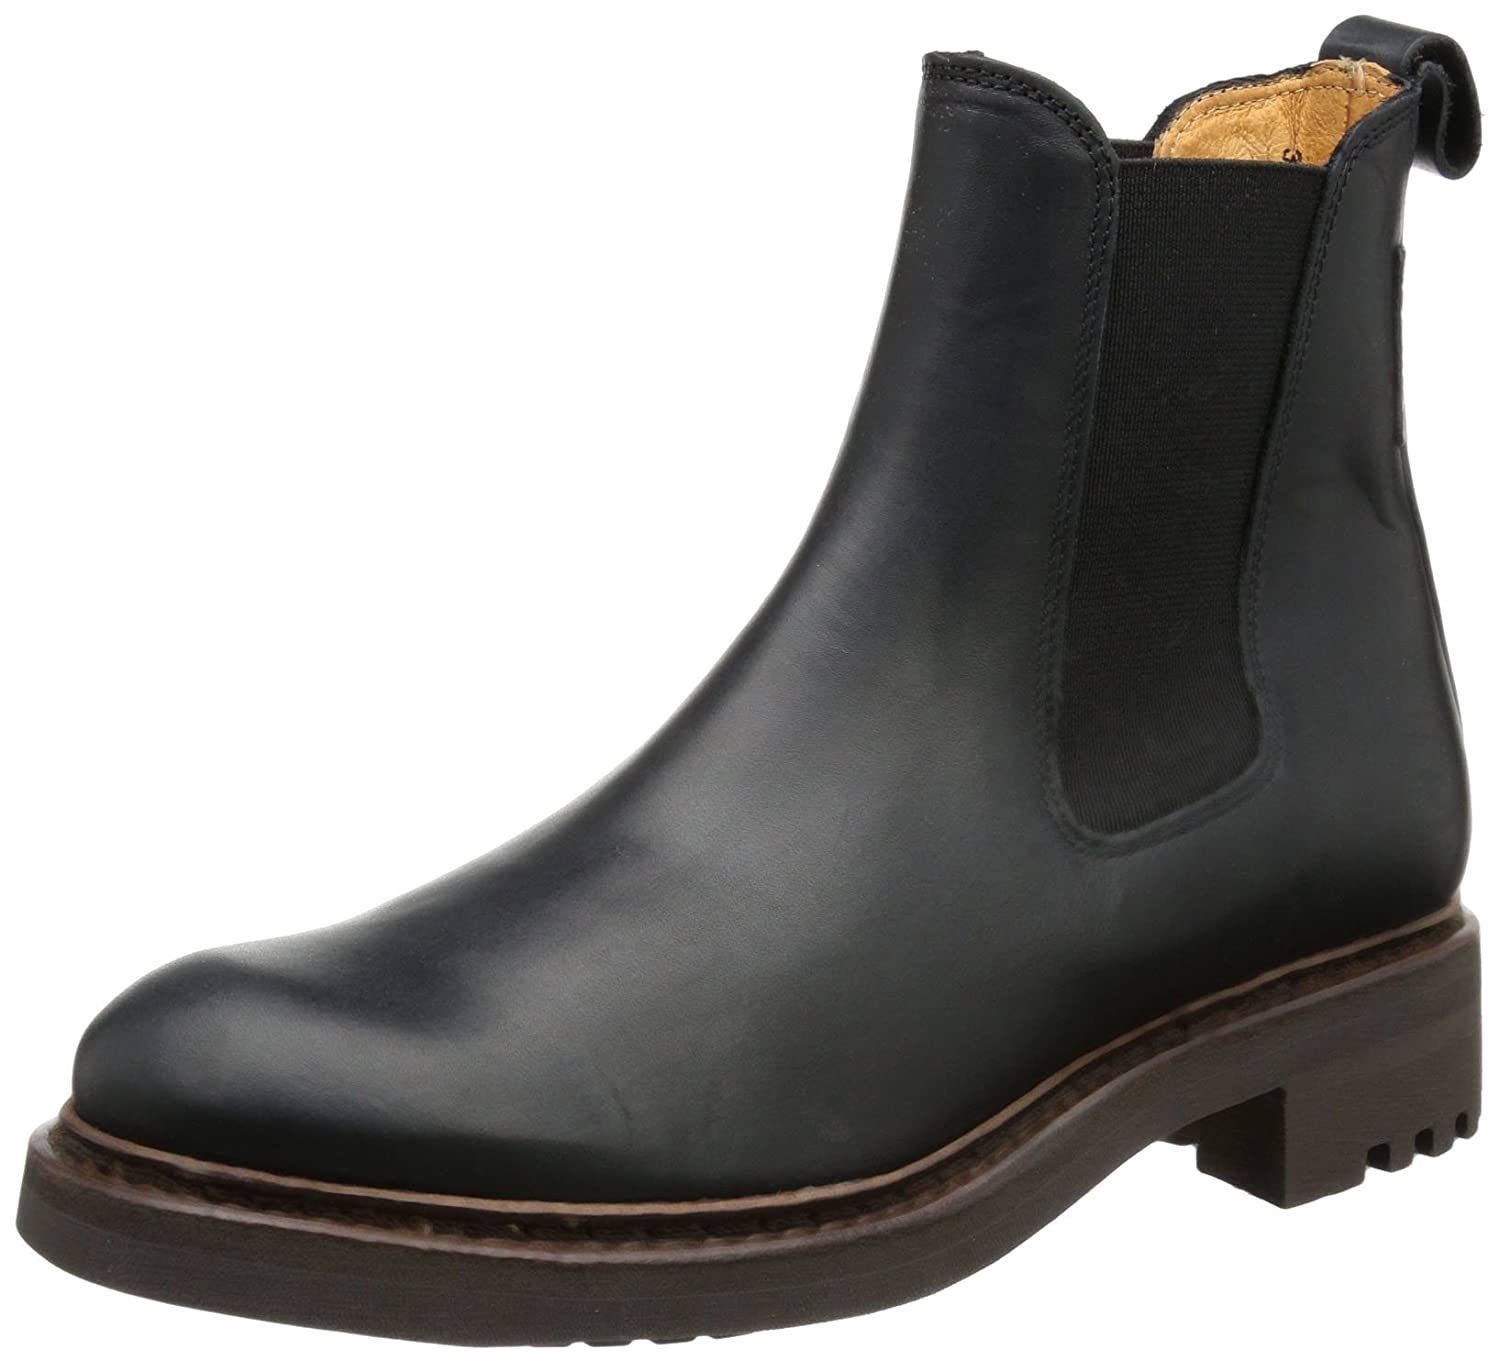 Brand New Unisex Sale Online Free Shipping Very Cheap Aigle Women's Monbrison Casual Schuhe Unlined Chelsea boots short length Cheap 2018 Unisex Cheapest Price Online Sast For Sale KsdHKQZ7